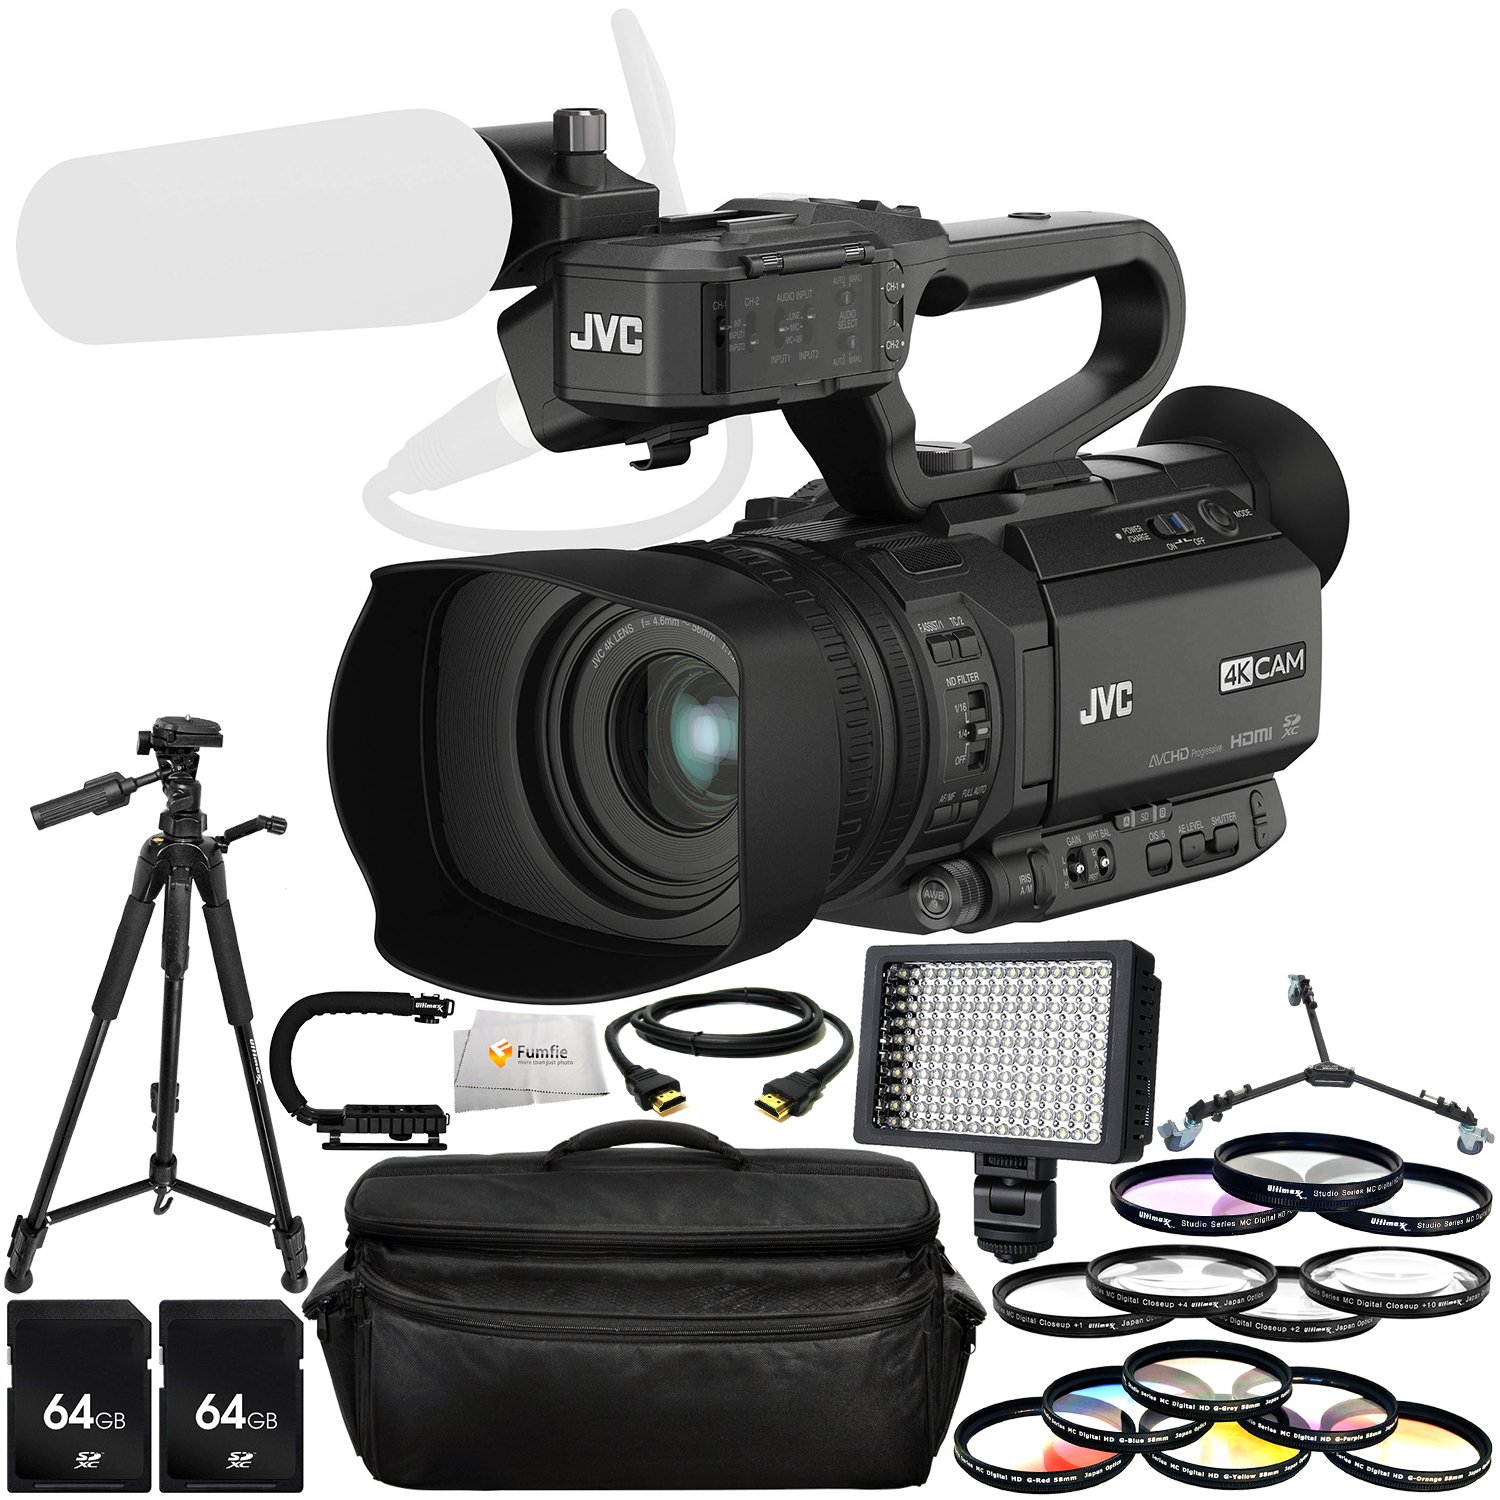 JVC GY-HM200HW House of Worship Streaming Camcorder Bundle Includes 2 64GB SD Memory Cards + Neutral Density Filter (ND2-ND400) + 72'' Tripod + Tripod Dolly + Professional 160 LED Light & More!